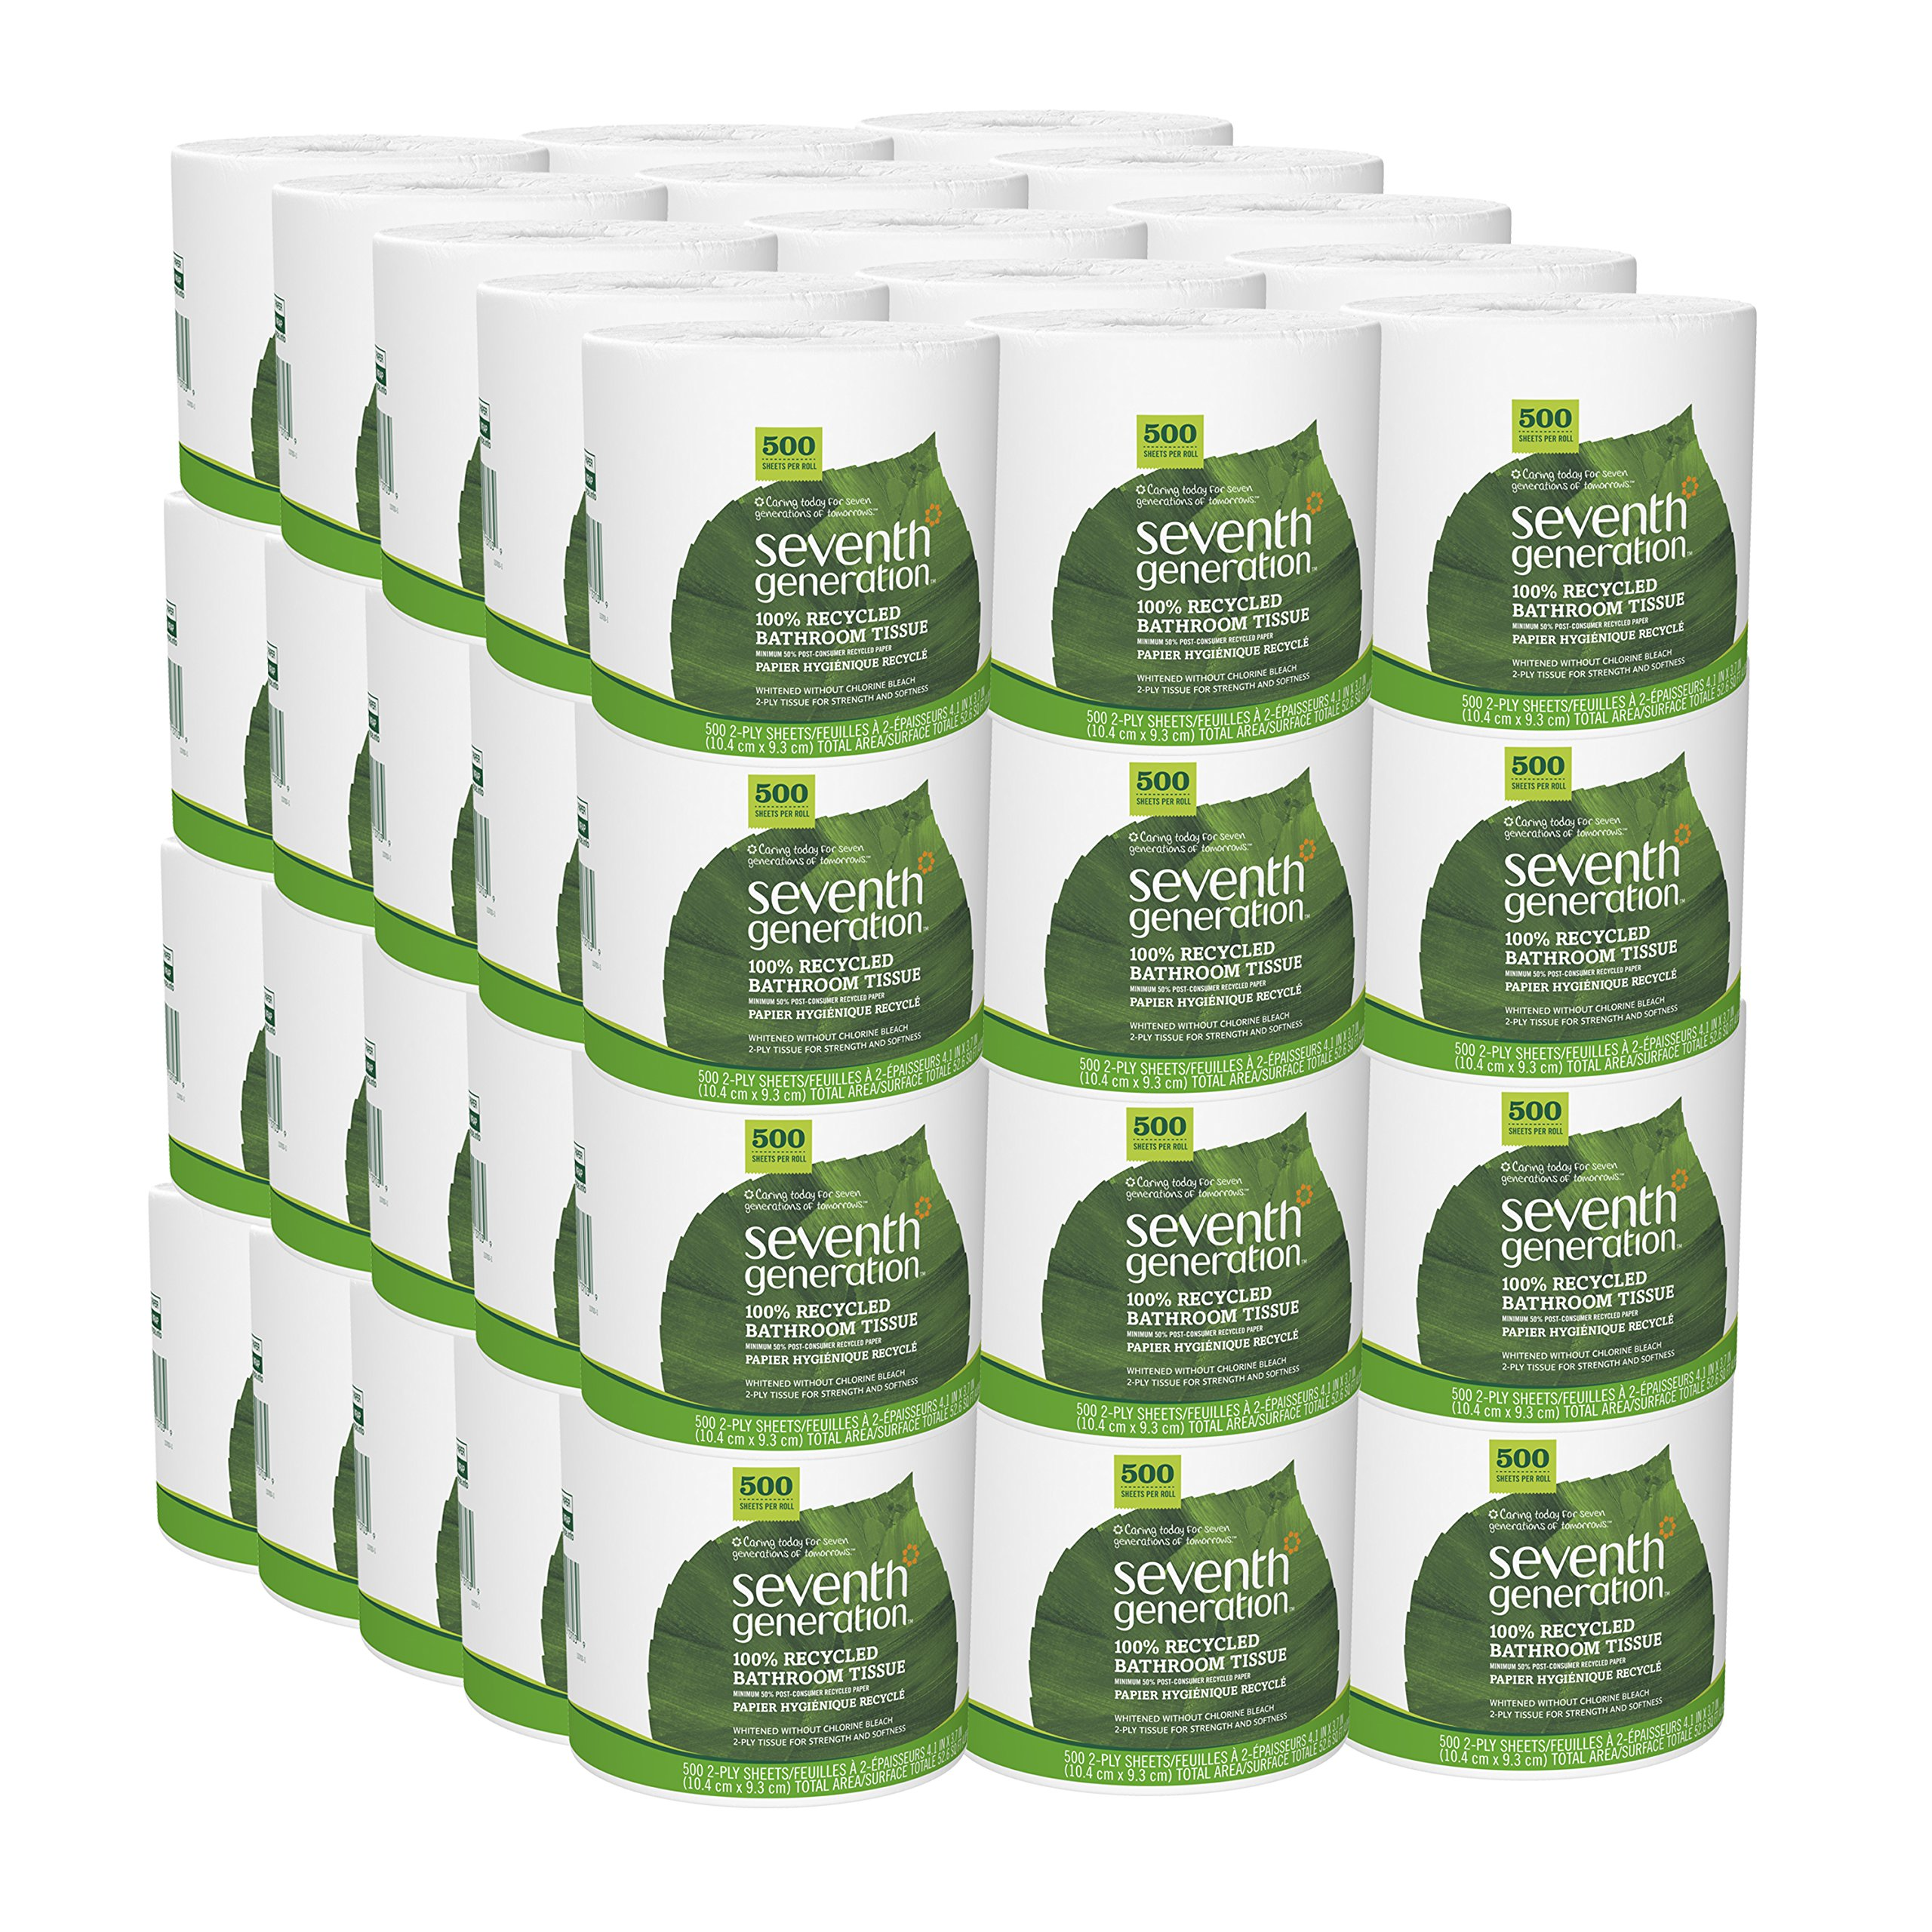 Seventh Generation Bathroom Tissue, 2 Ply Sheets, 500 Count (Pack of 60)